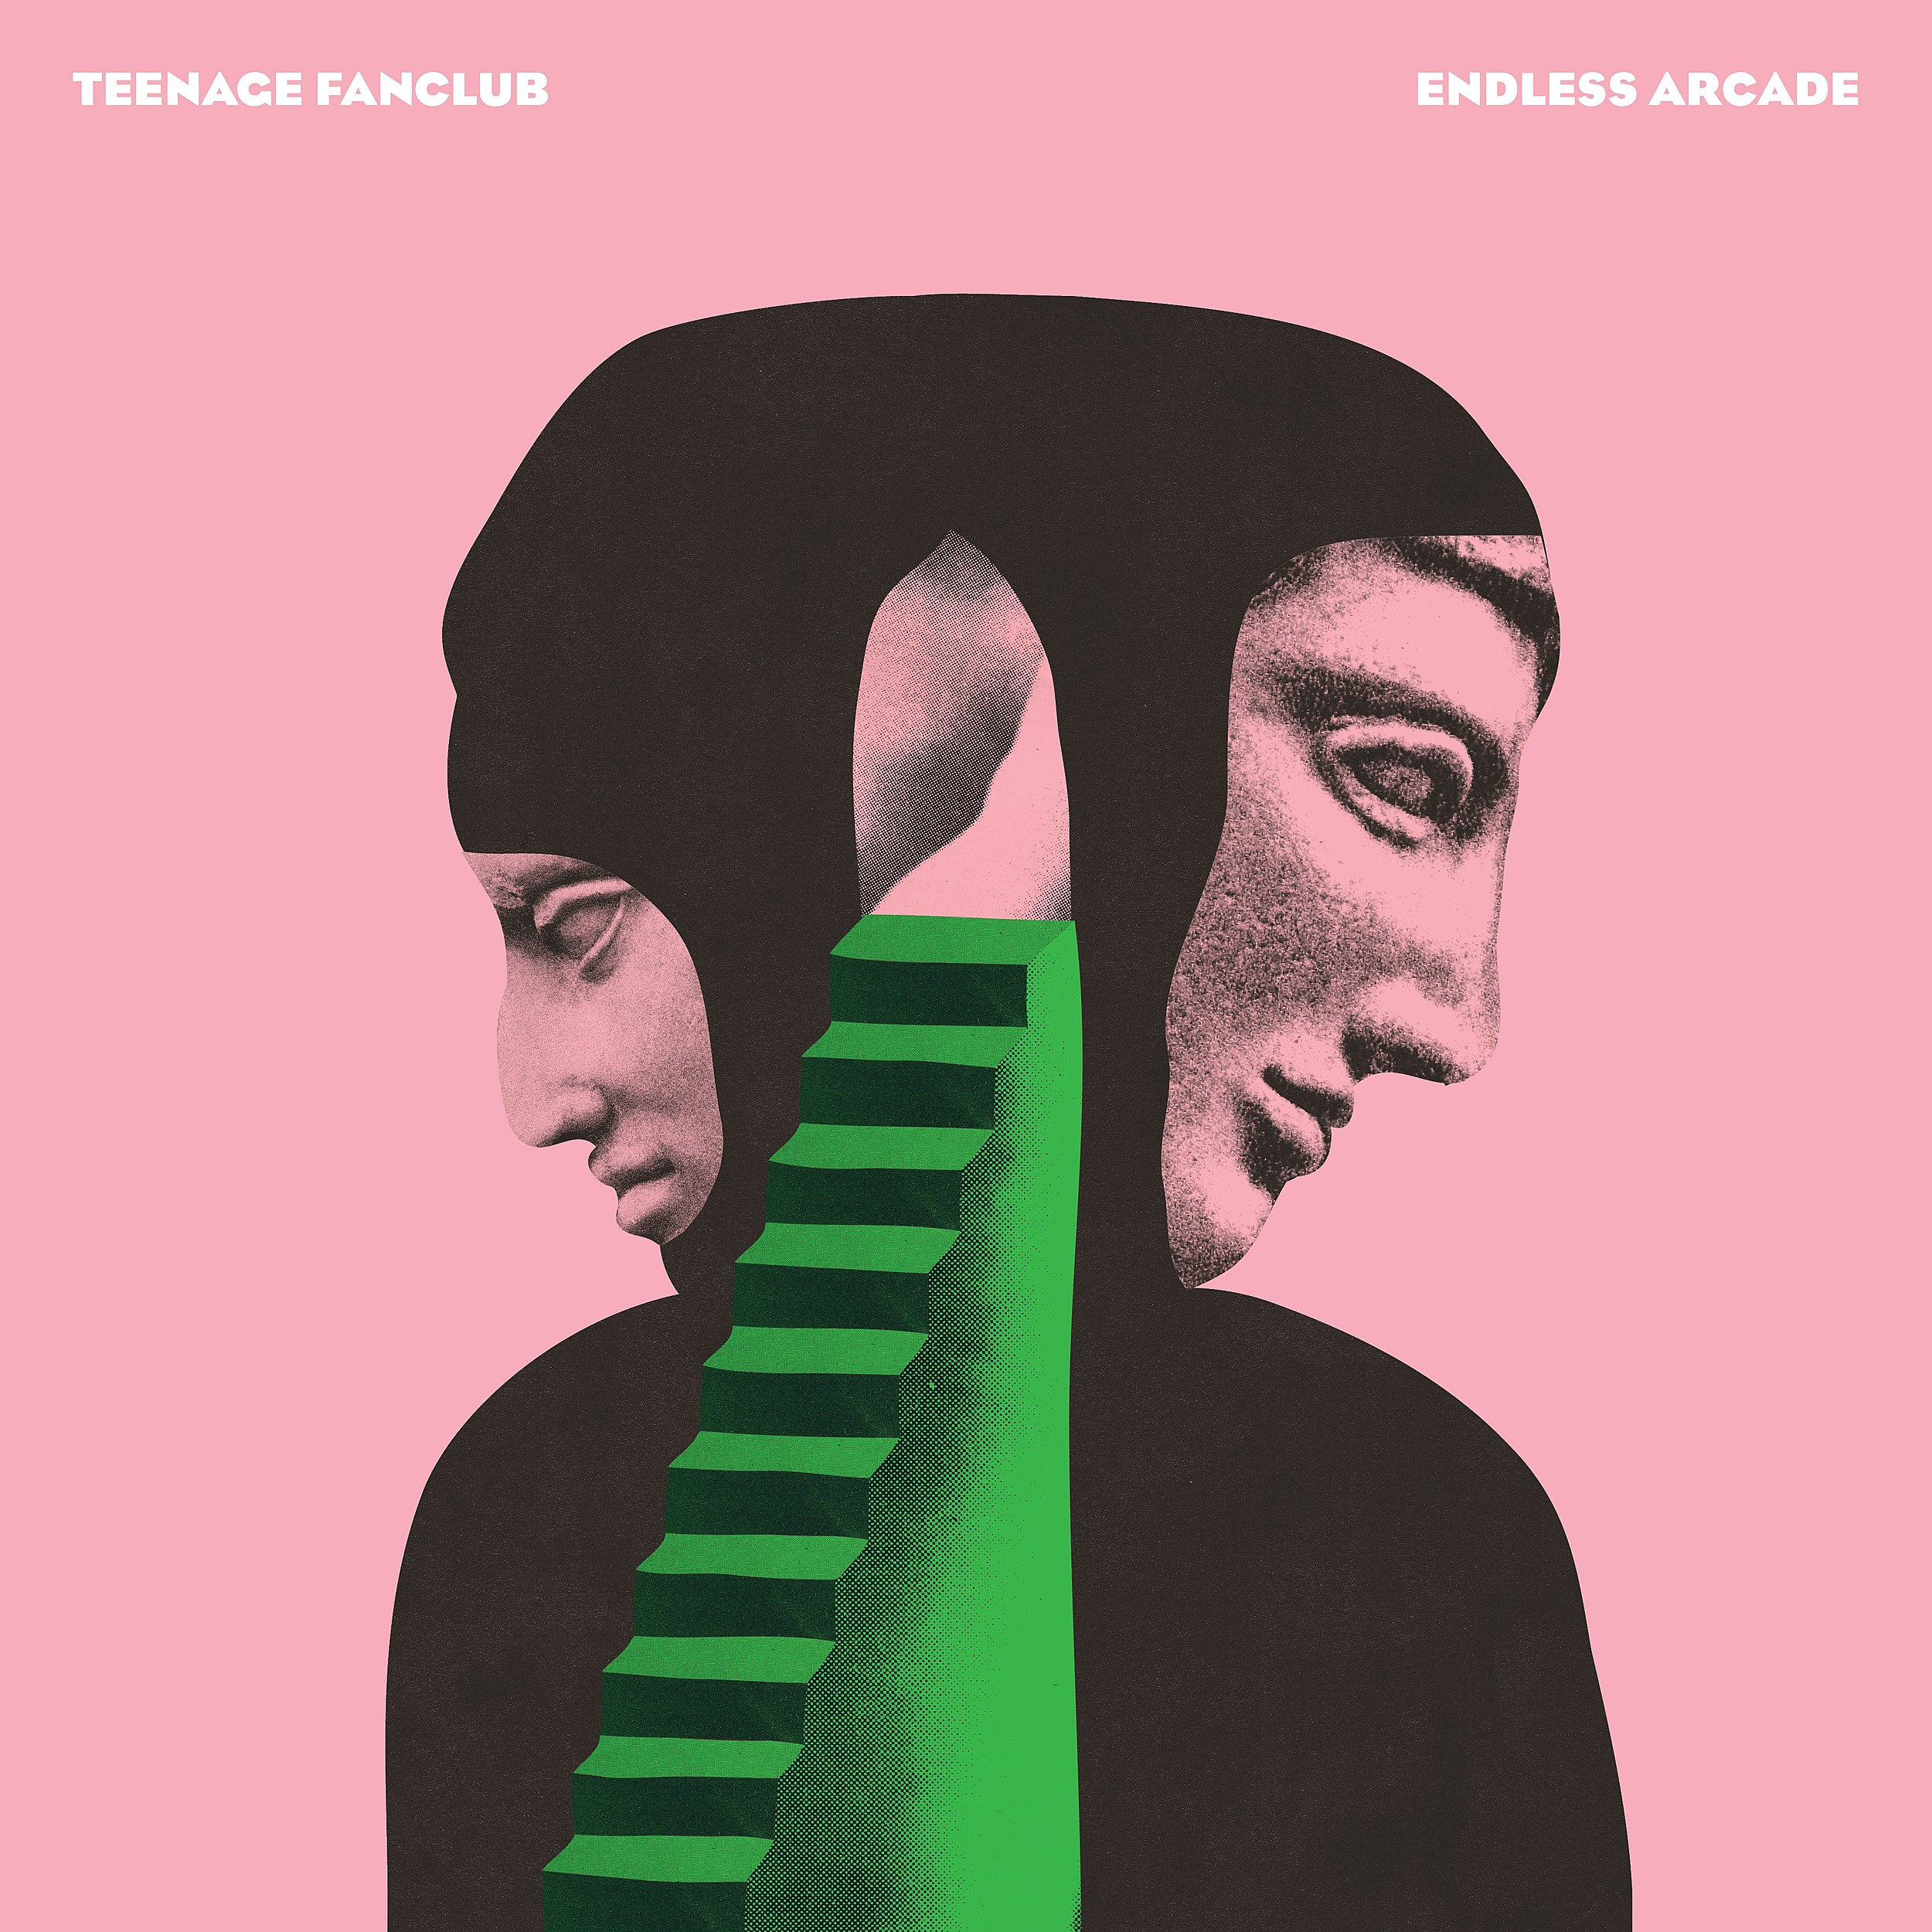 Teenage Fanclub – Endless Arcade // coming March 05th 2021